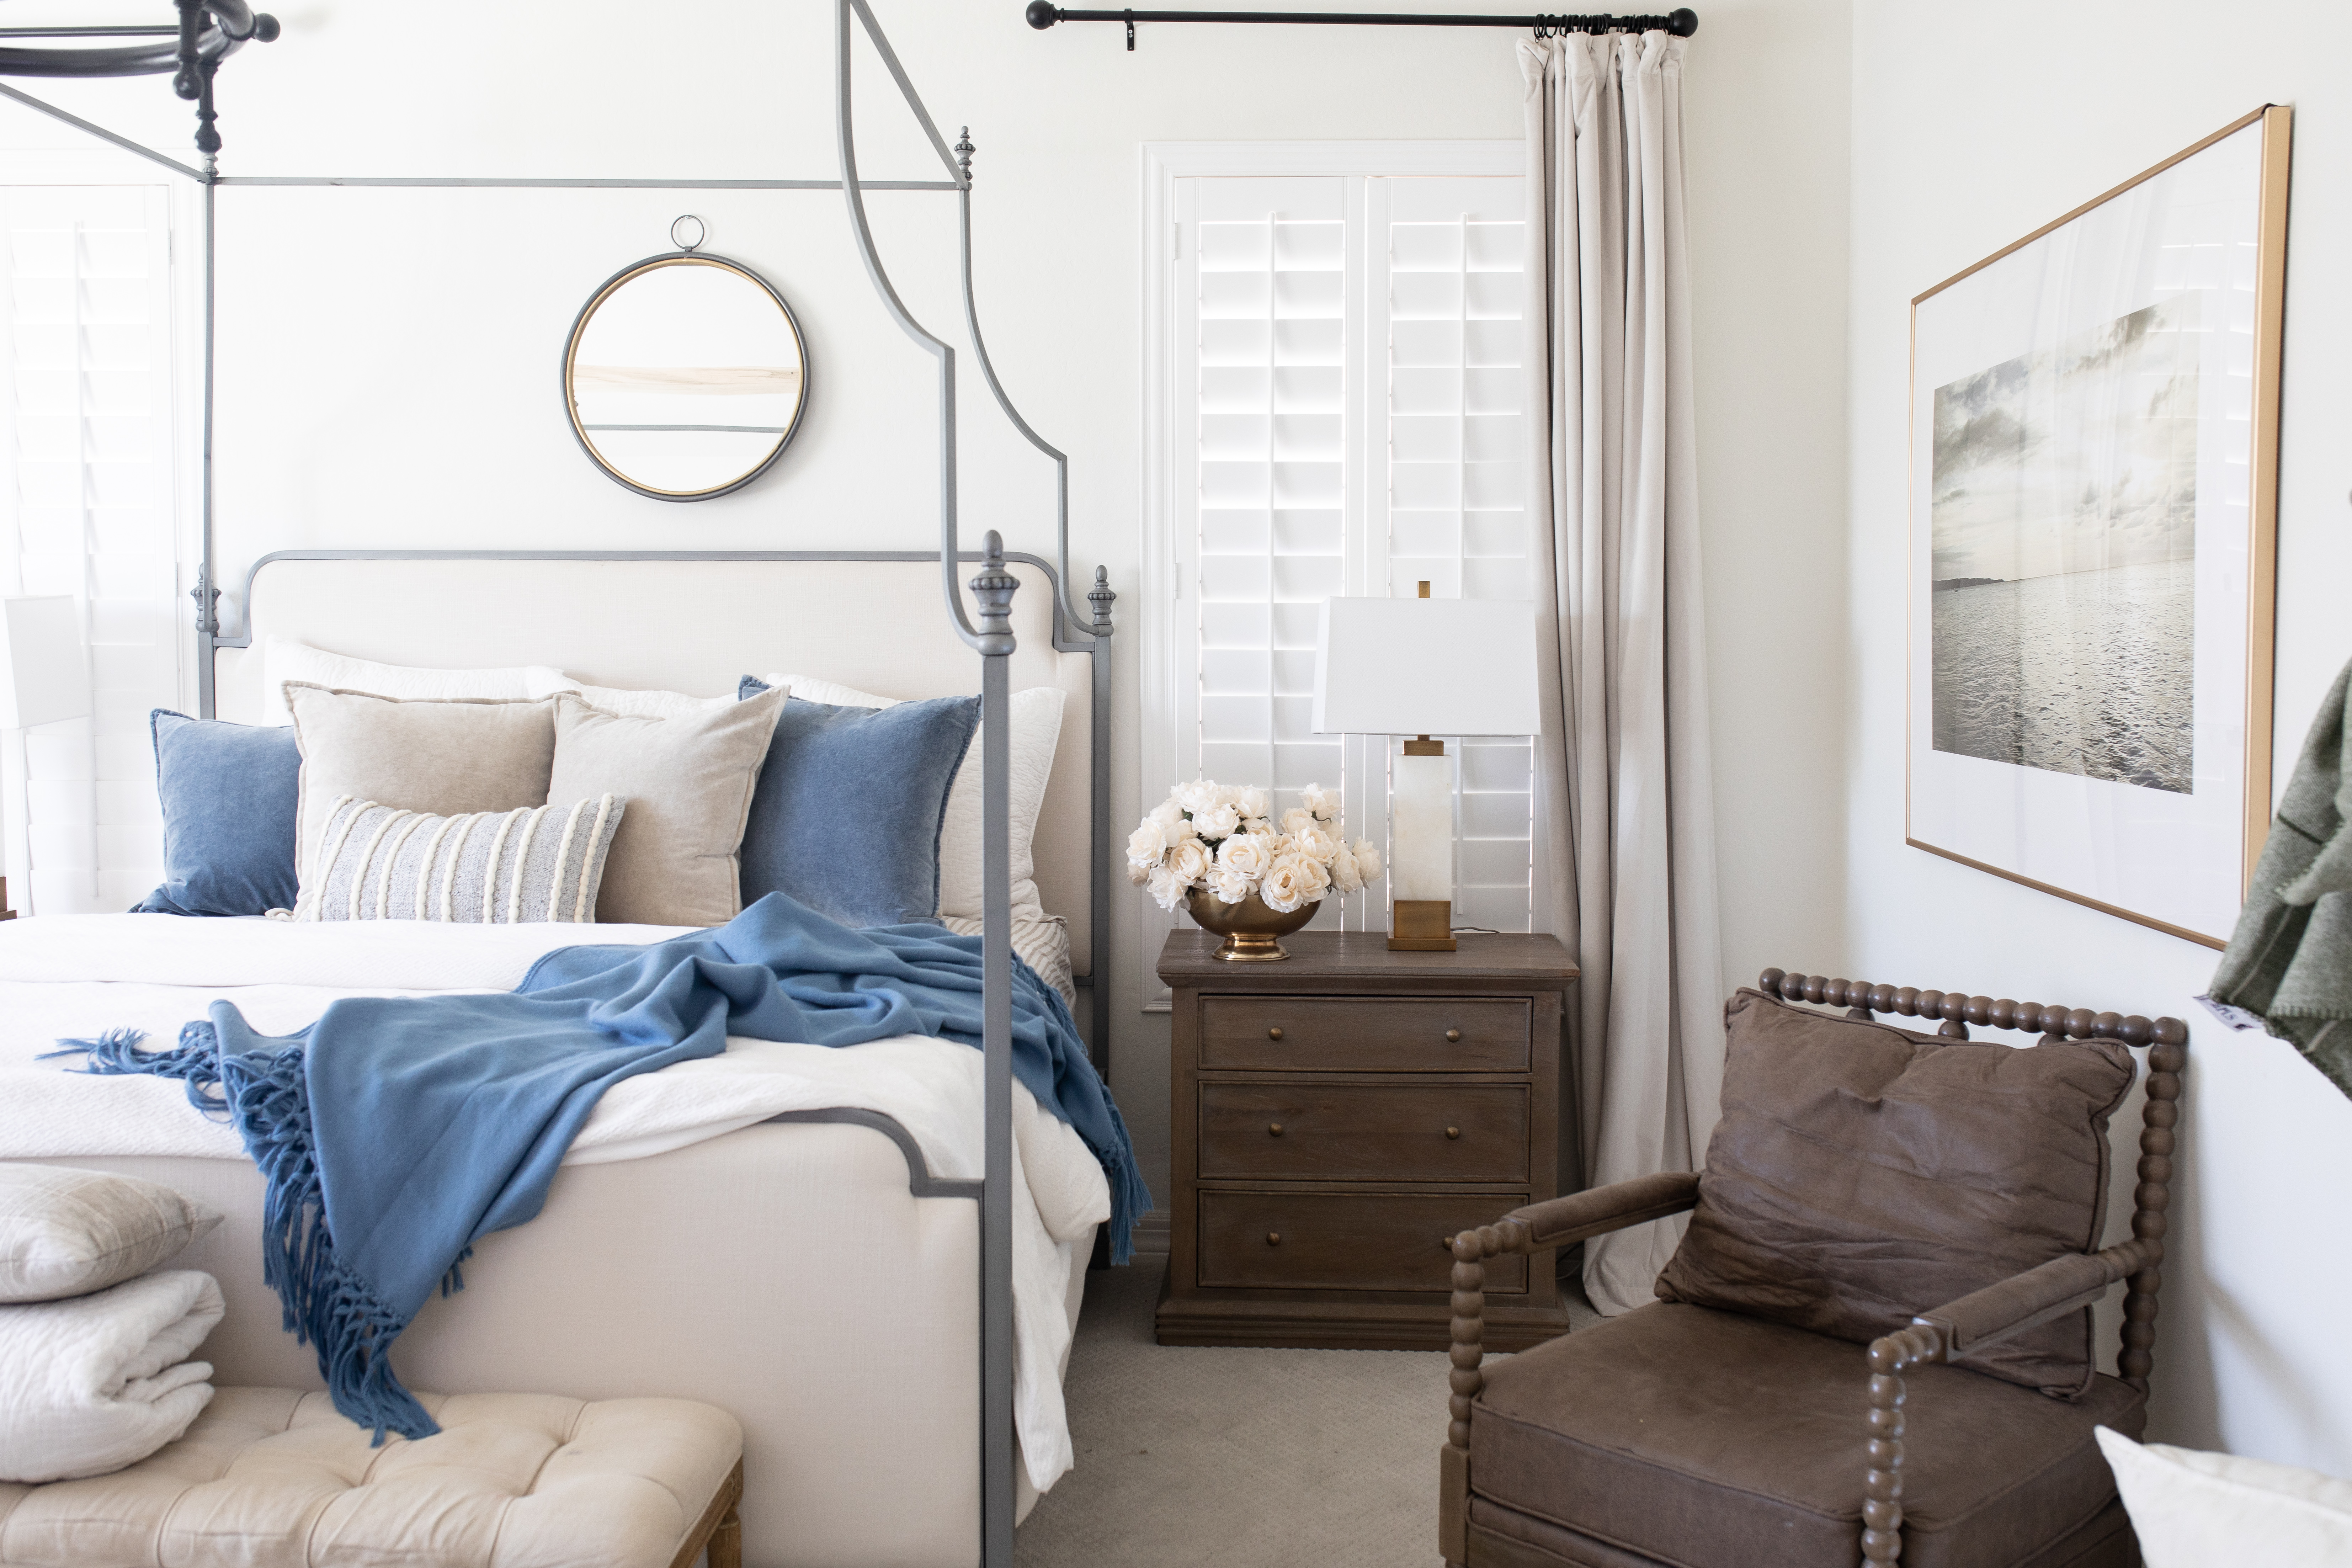 Bedroom with blue and white